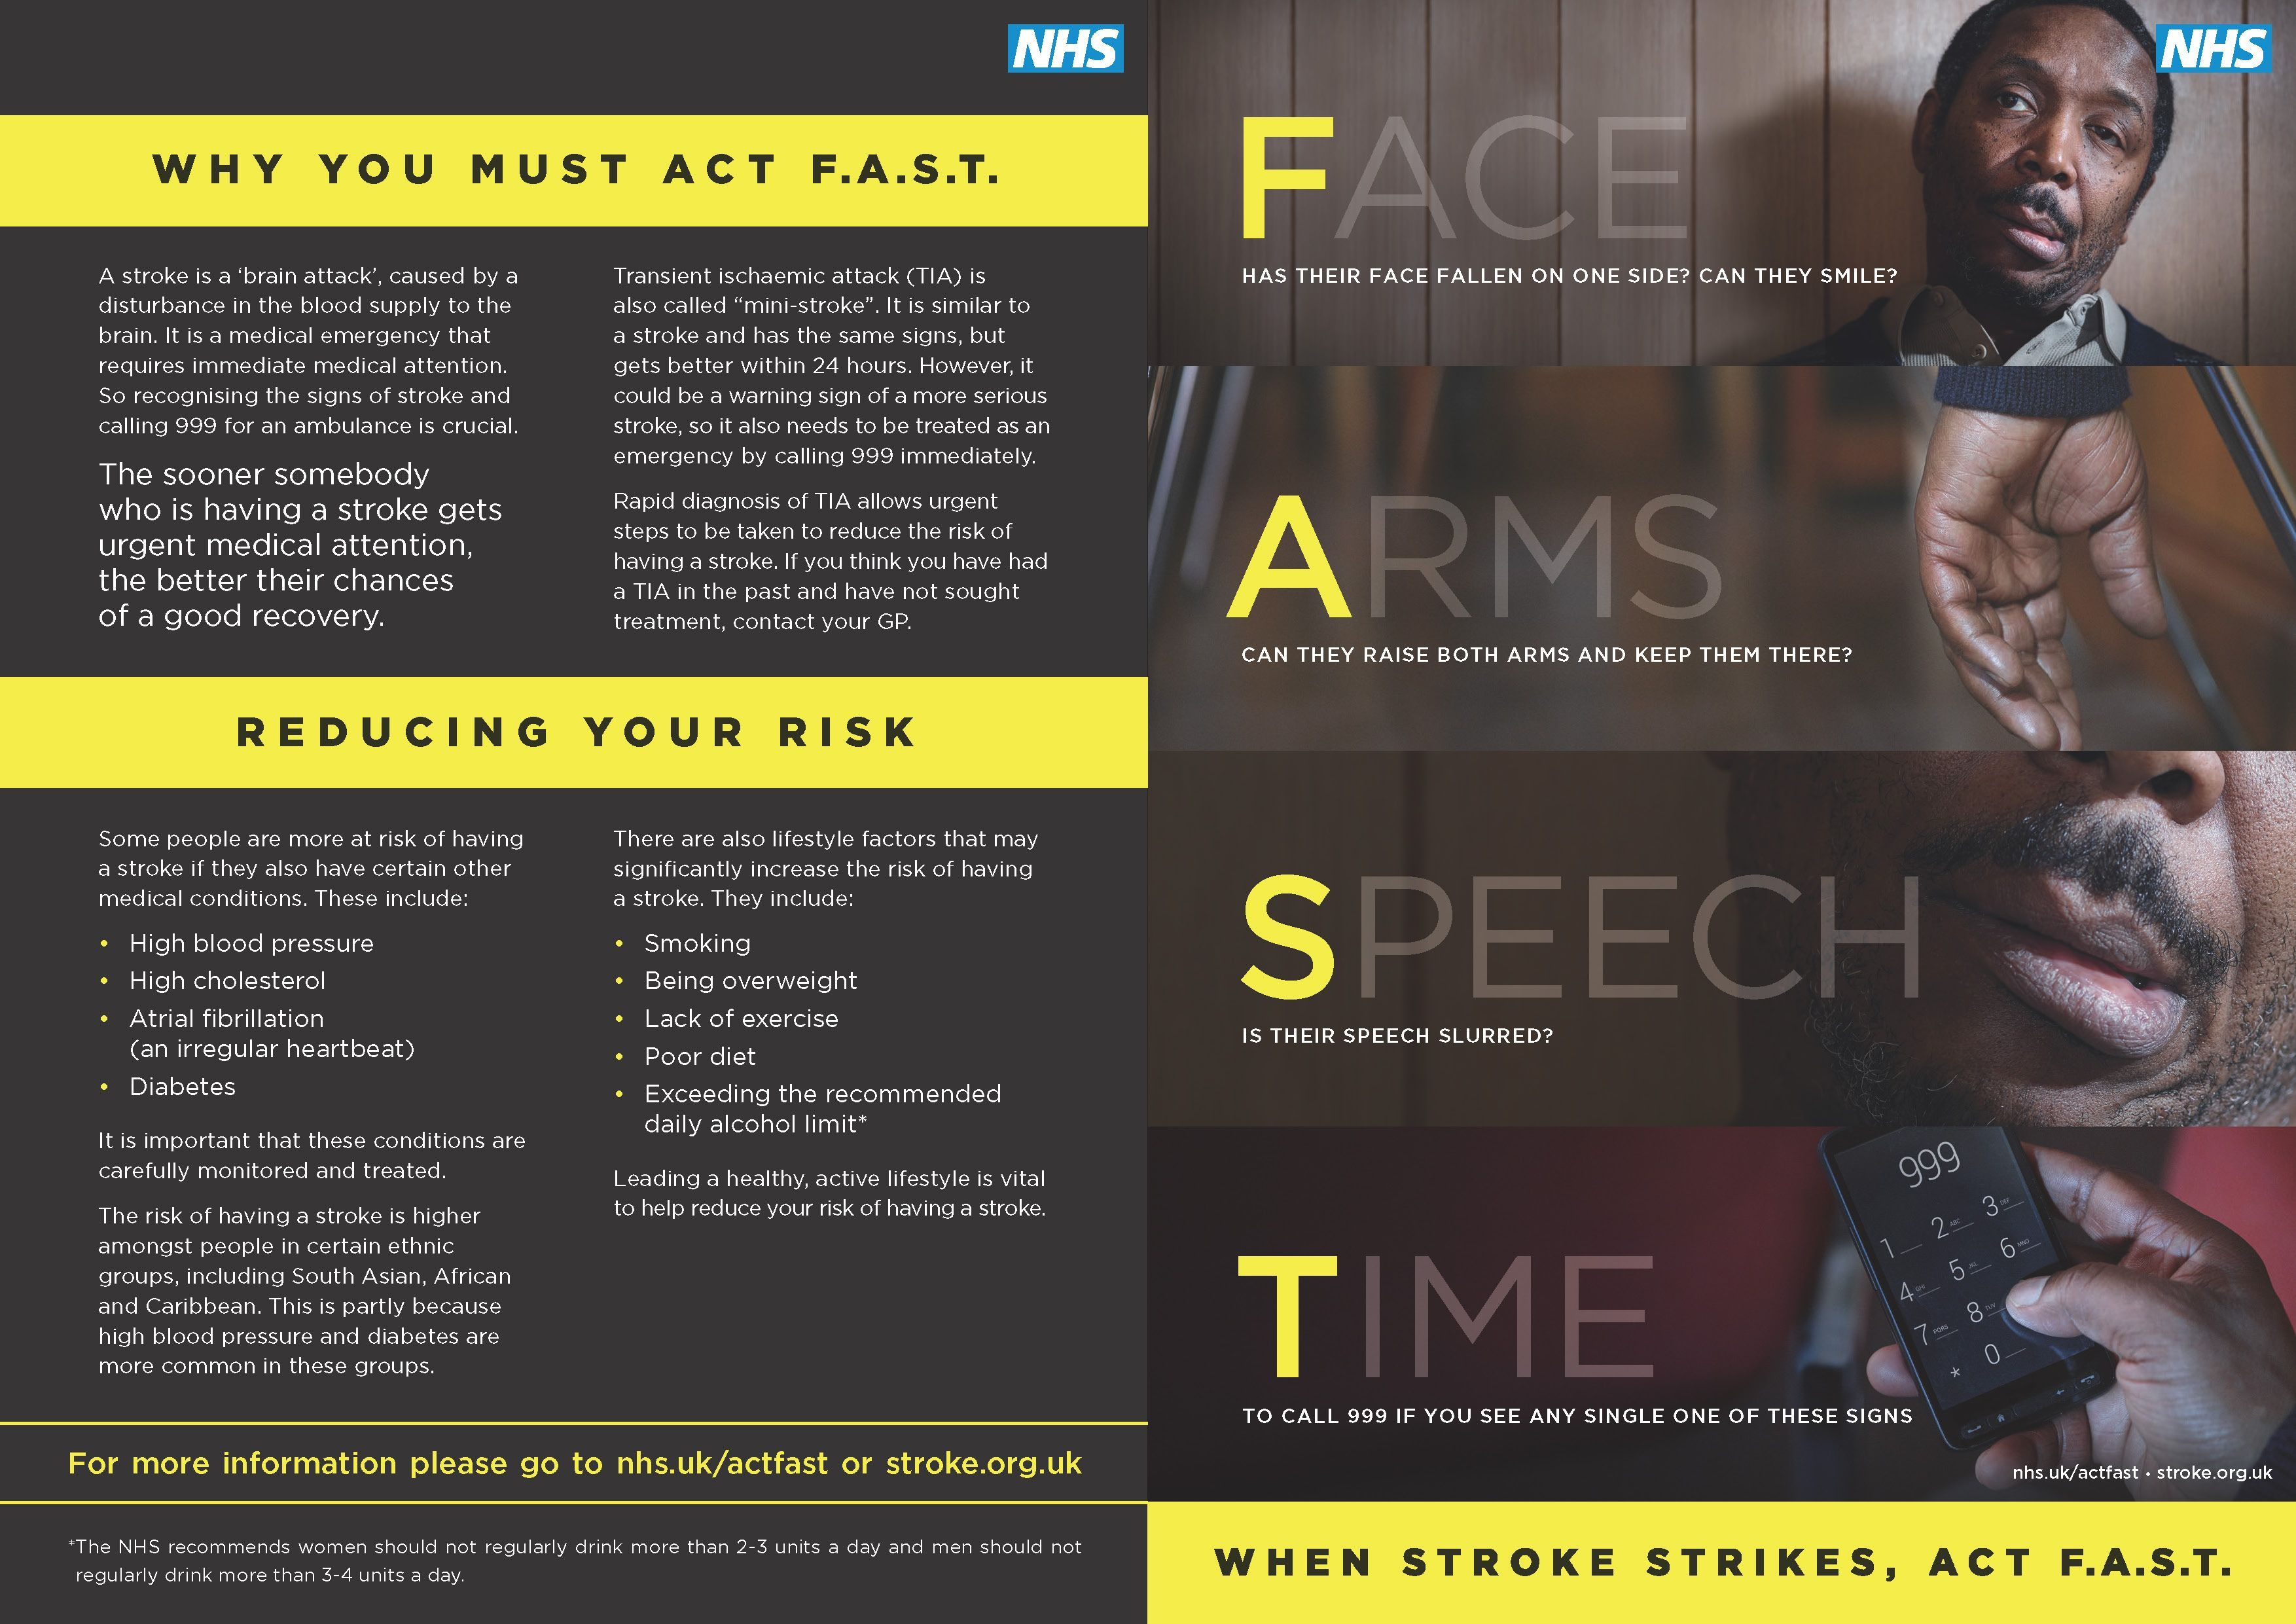 Act FAST leaflet describing the signs and symptoms of